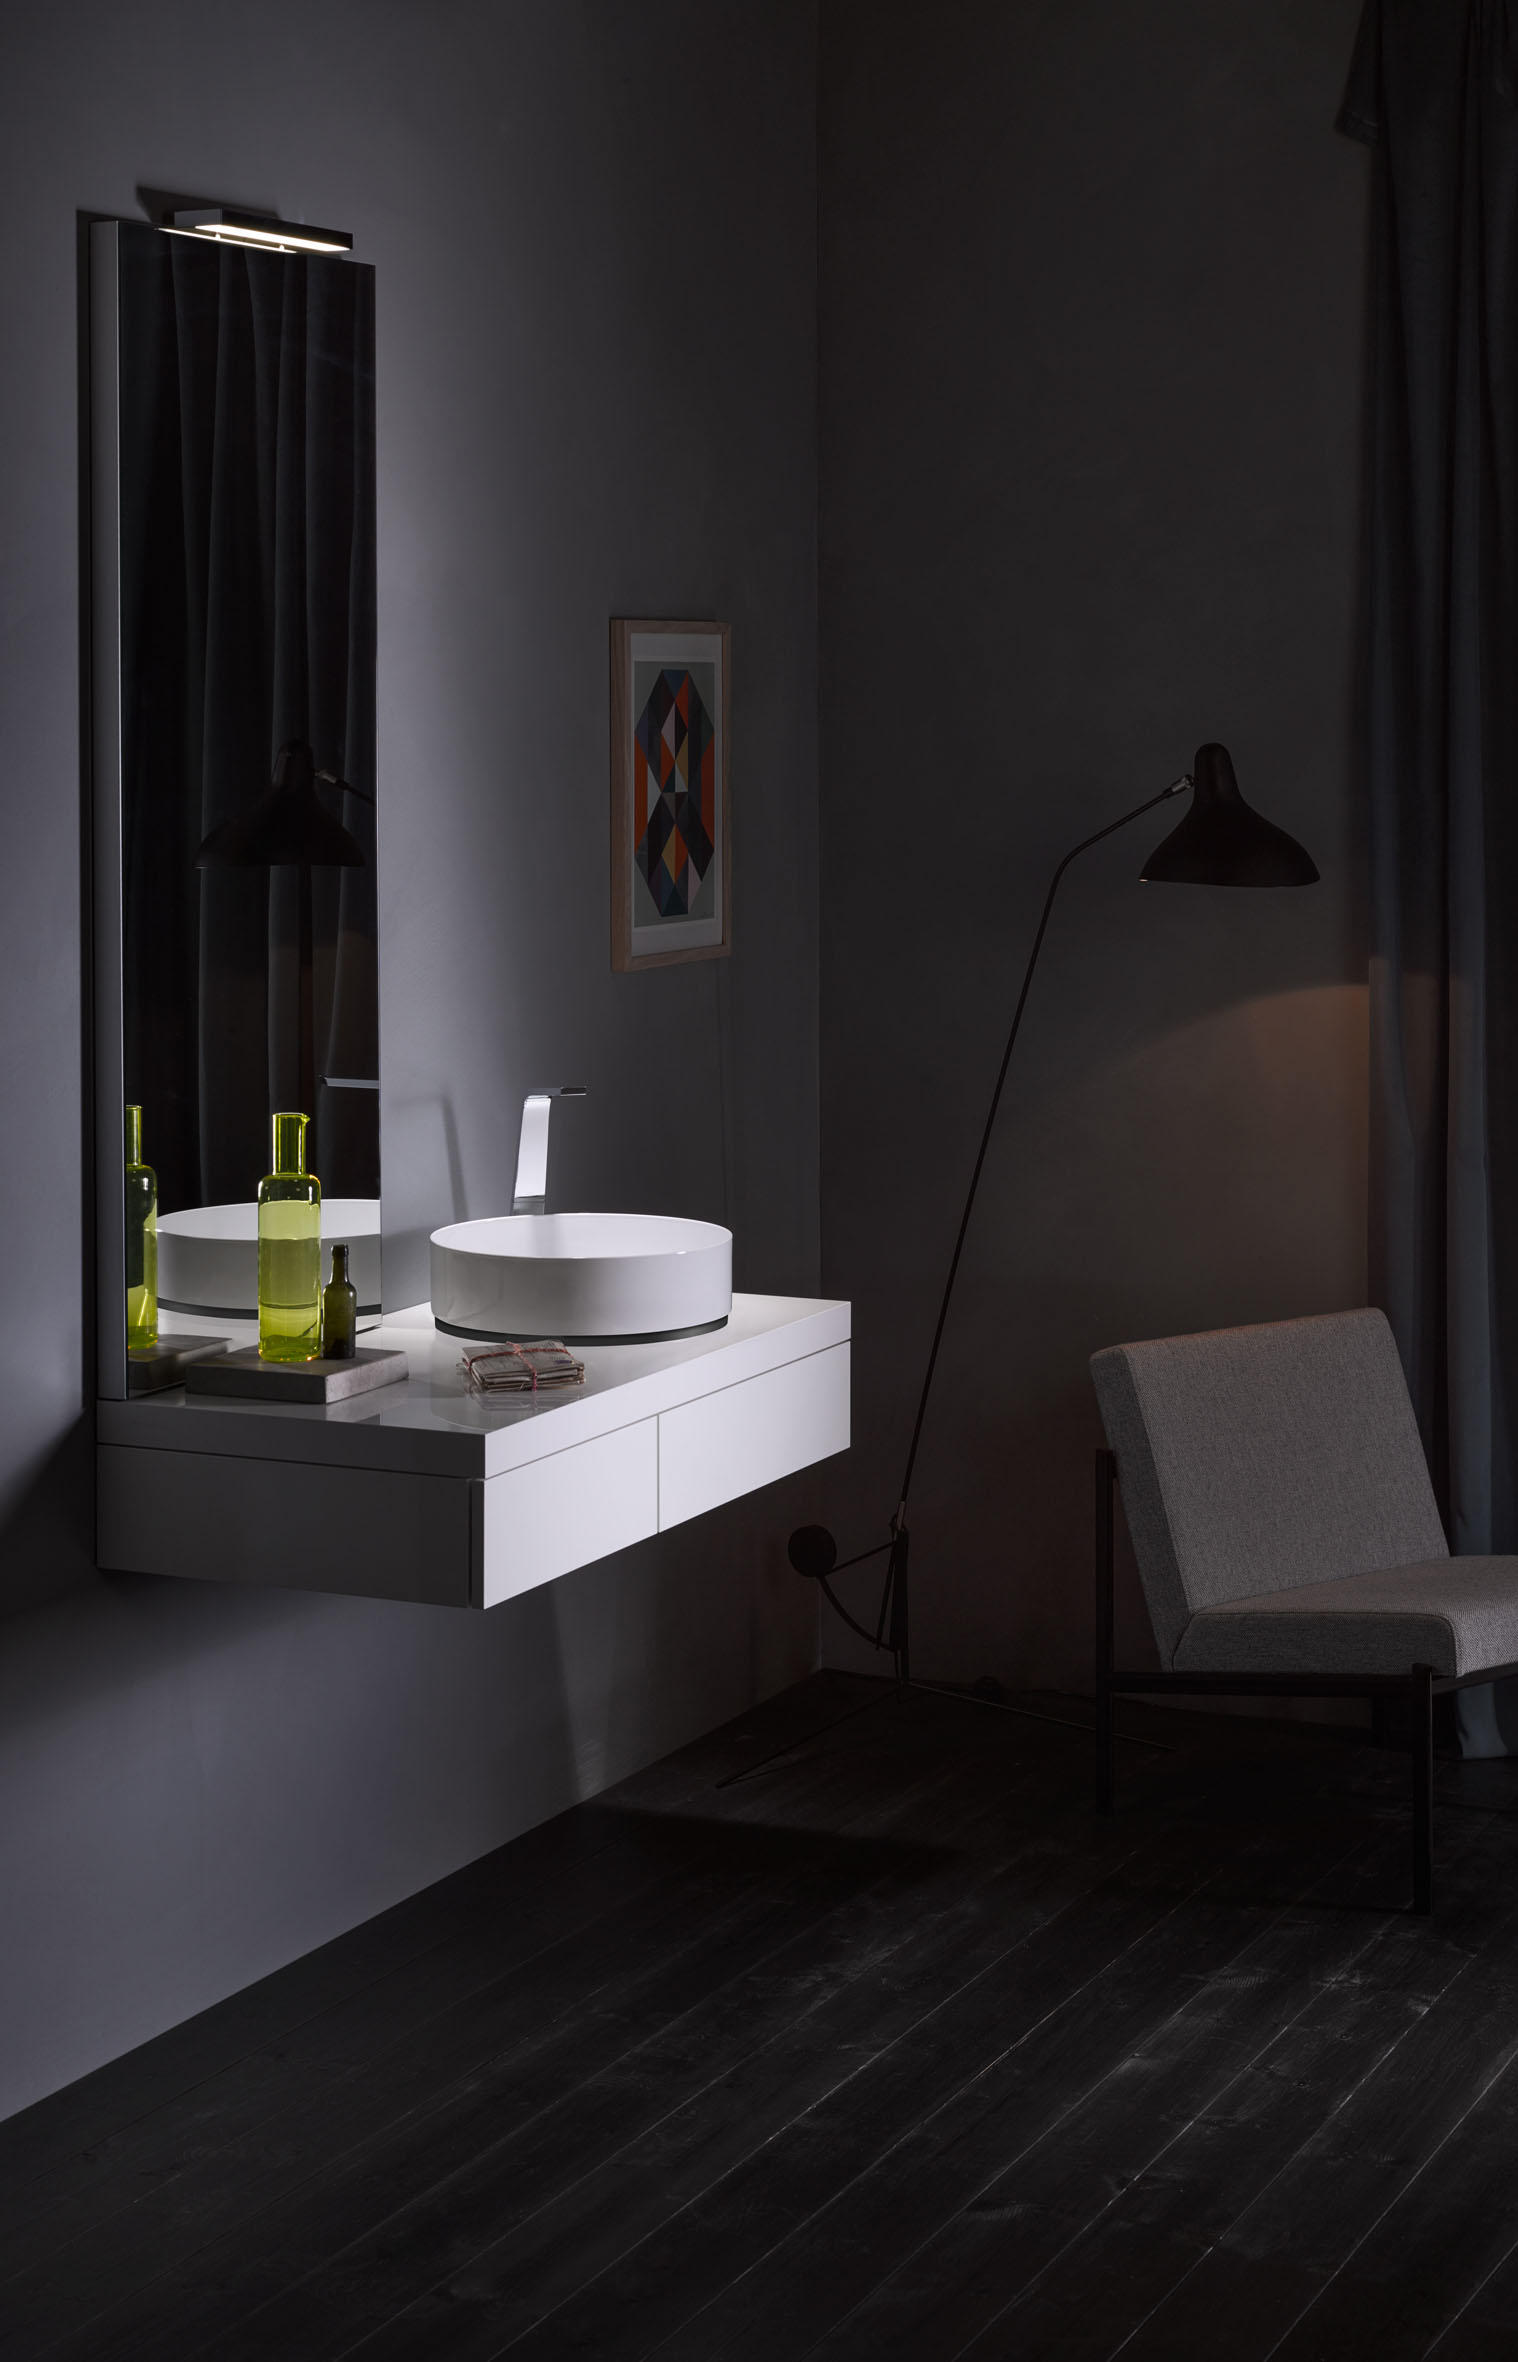 Ab Ke325 Wash Basins From Alape Architonic